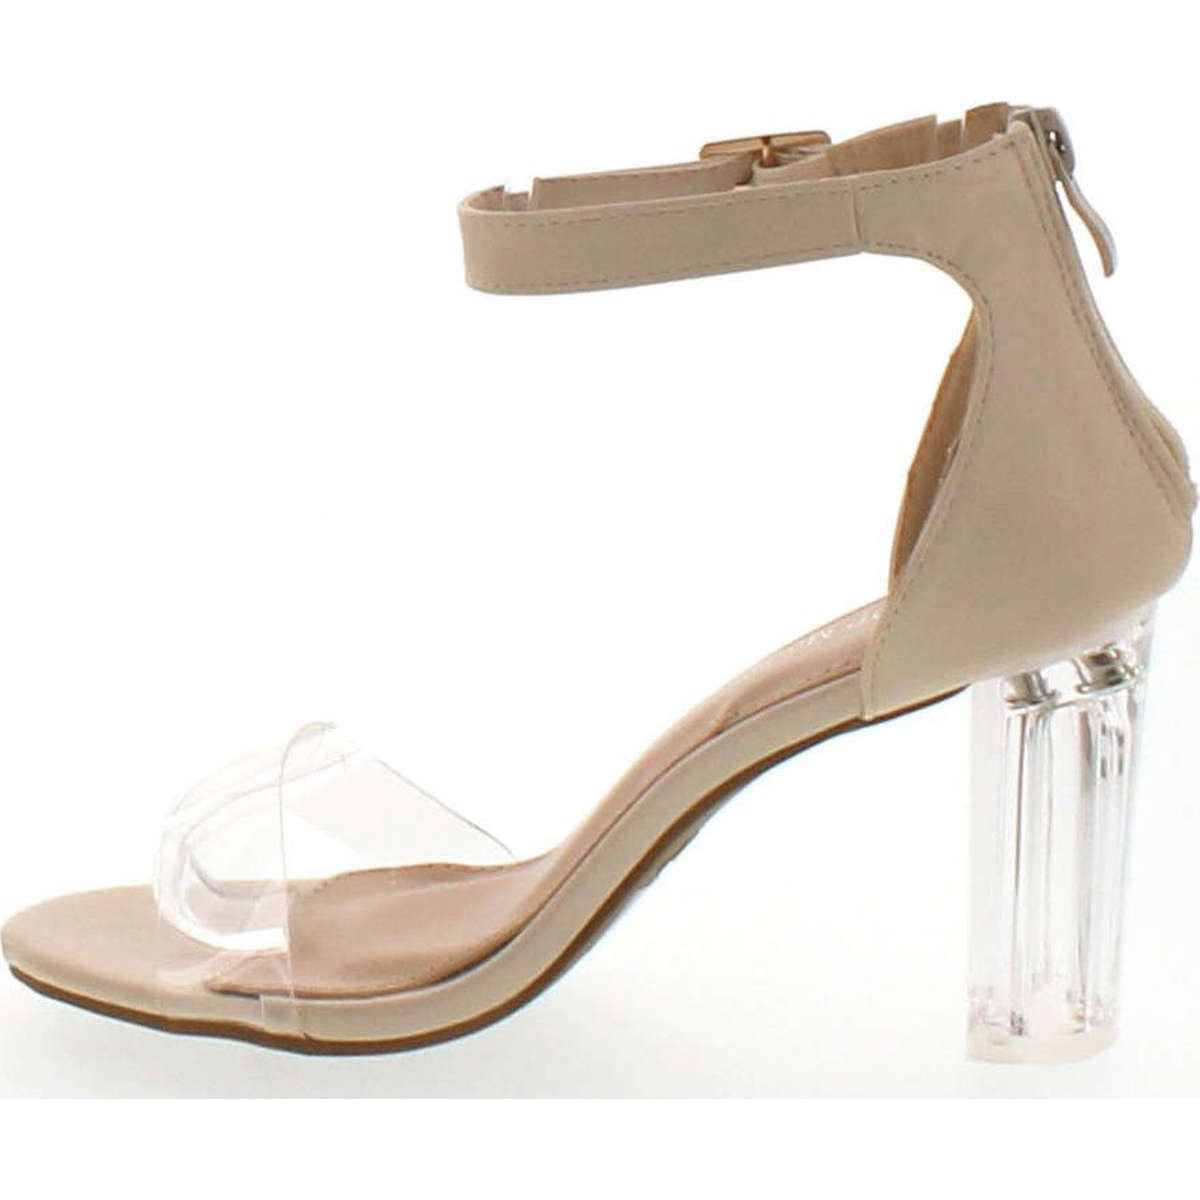 c32a75a5e Shop Top Moda Women's Alma-55 Lucite Clear Strappy Block Chunky High Heel  Open Peep Toe Sandal - Free Shipping On Orders Over $45 - Overstock -  14820352